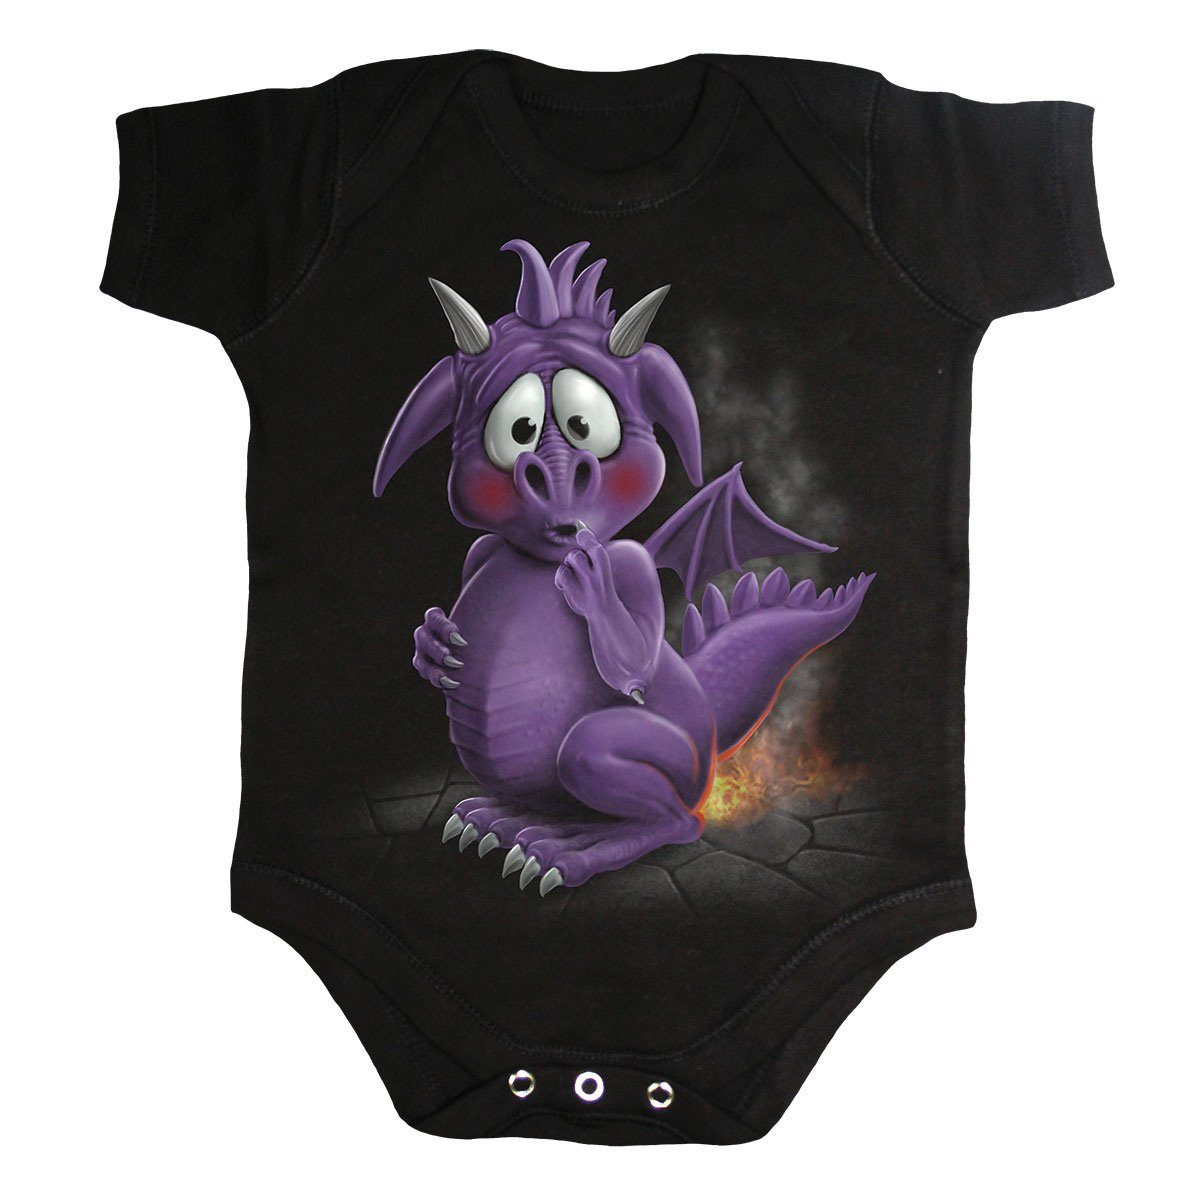 Wind & Fire Baby Dragon Black Onesie - Rebels Depot